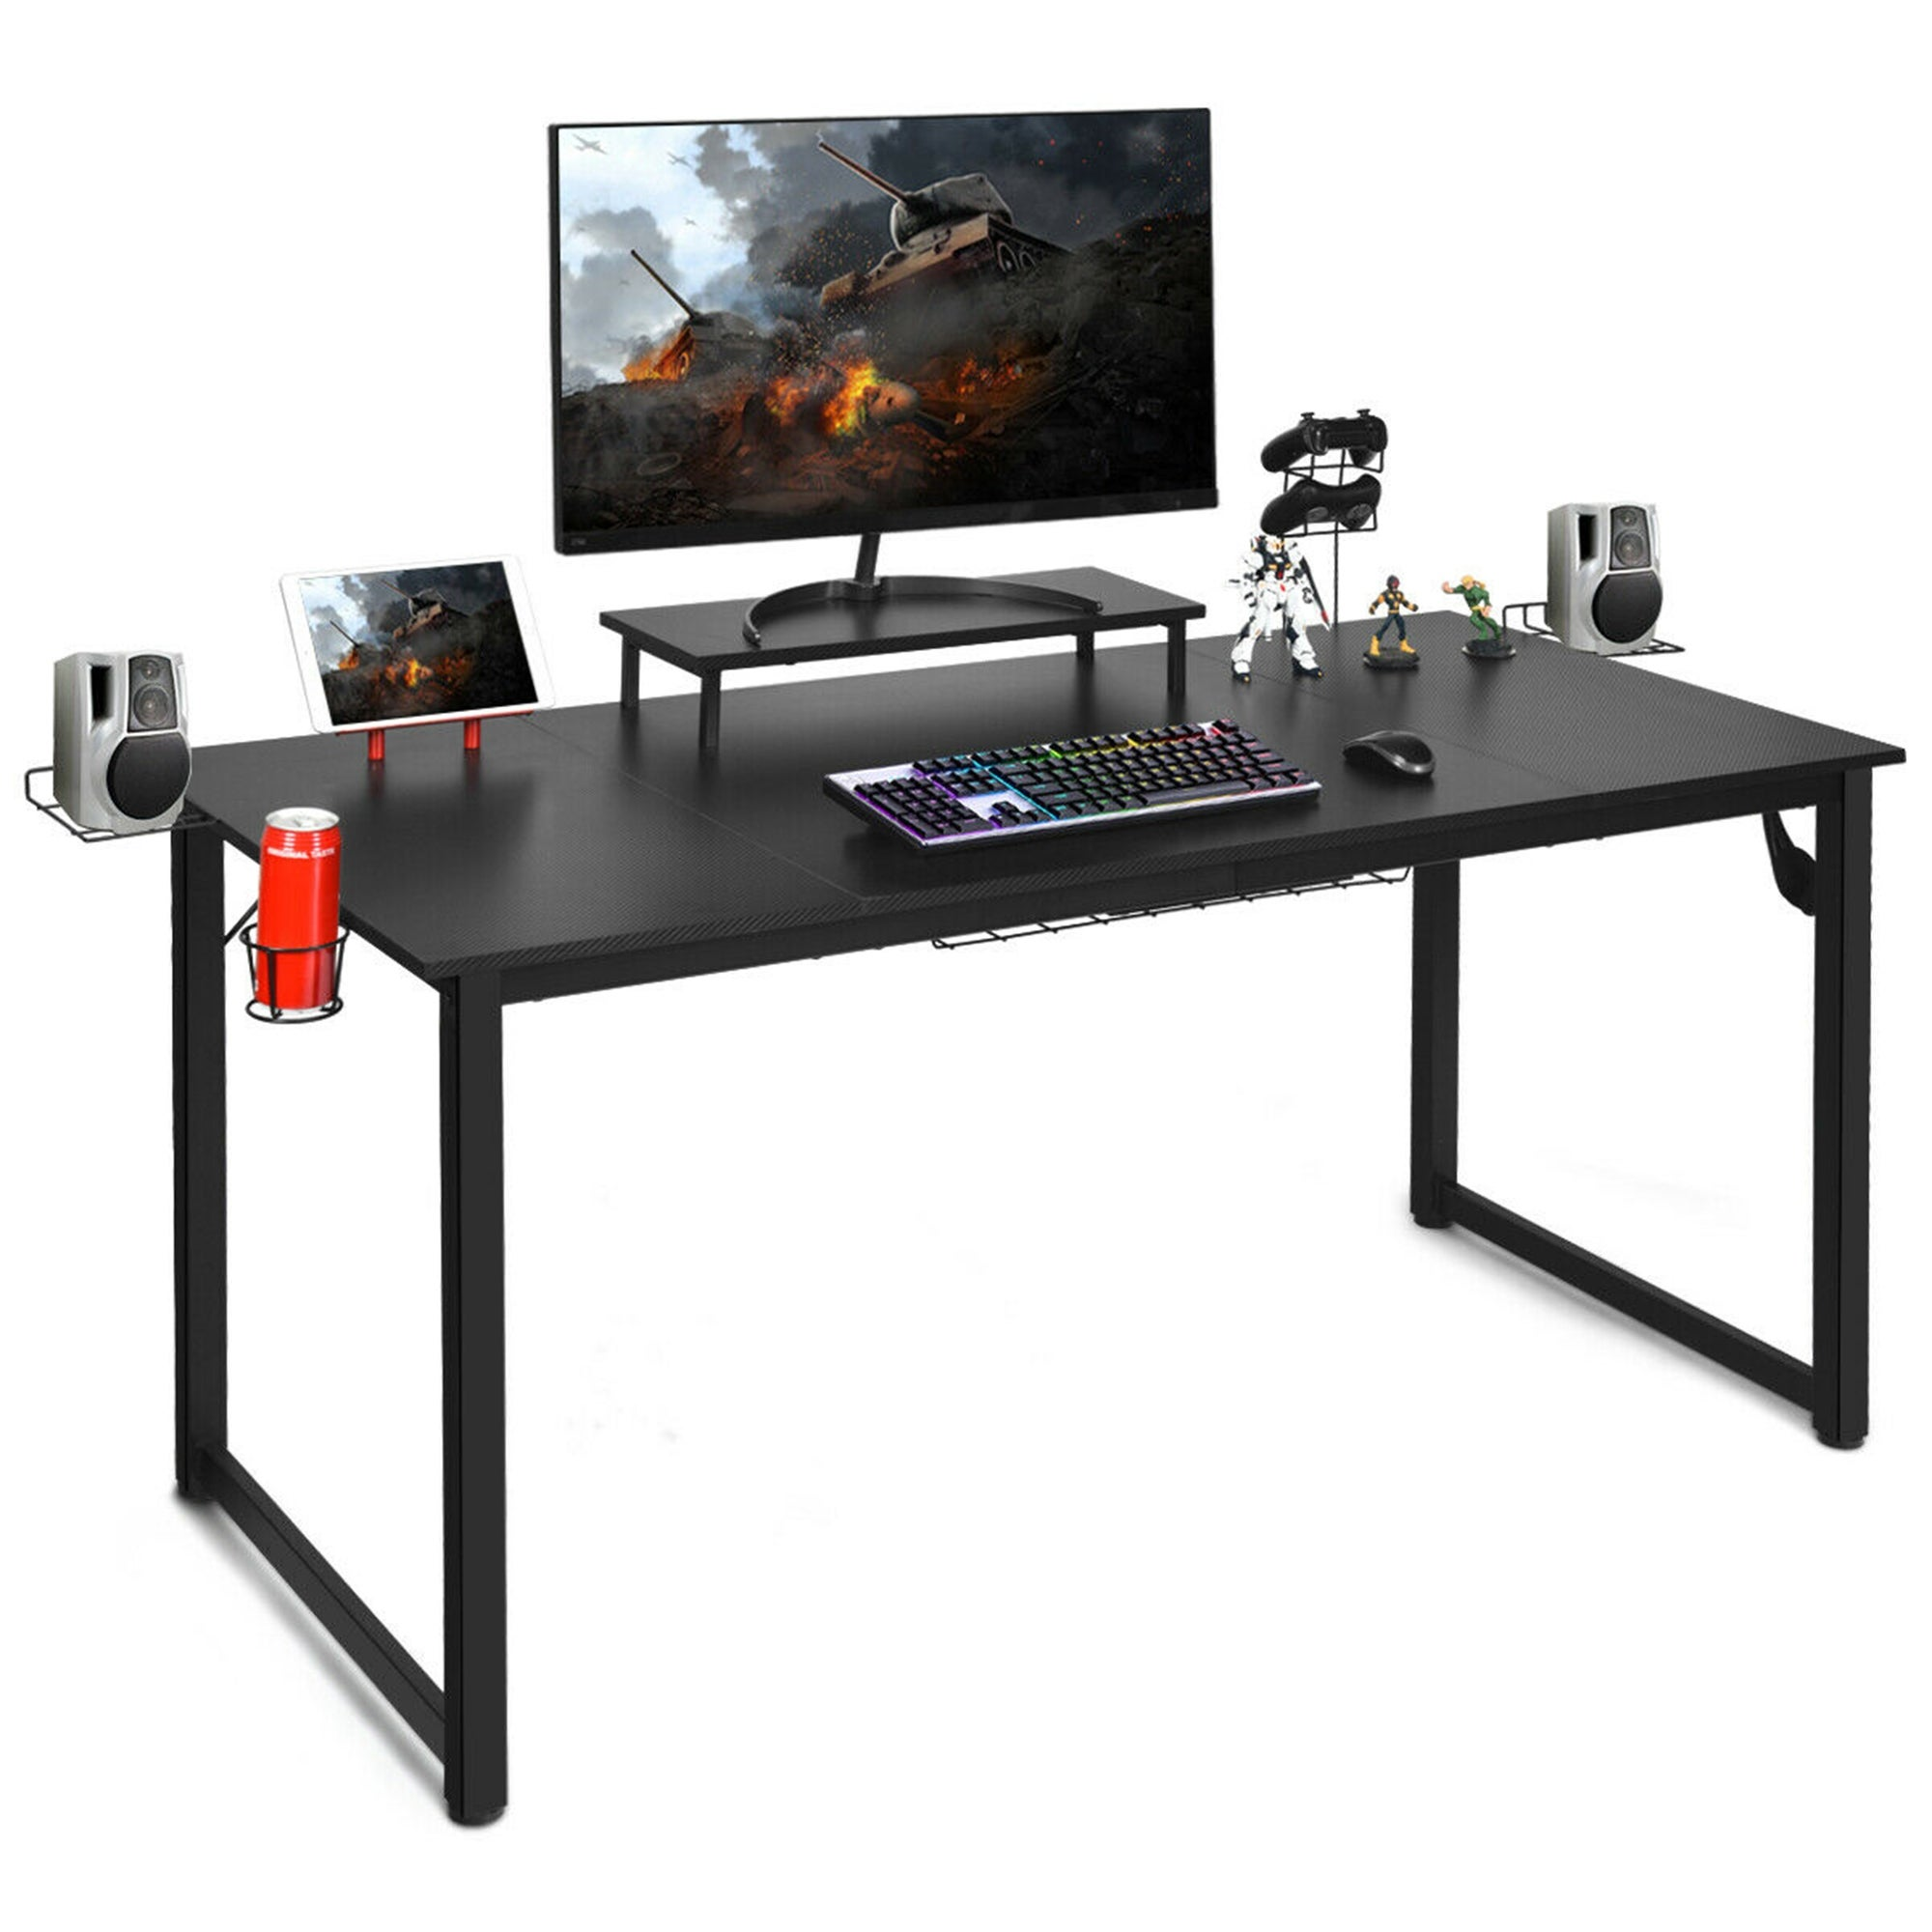 Gymax 63 Gaming Desk W Monitor Shelf Tablet Board Storage For On Sale Overstock 31960221